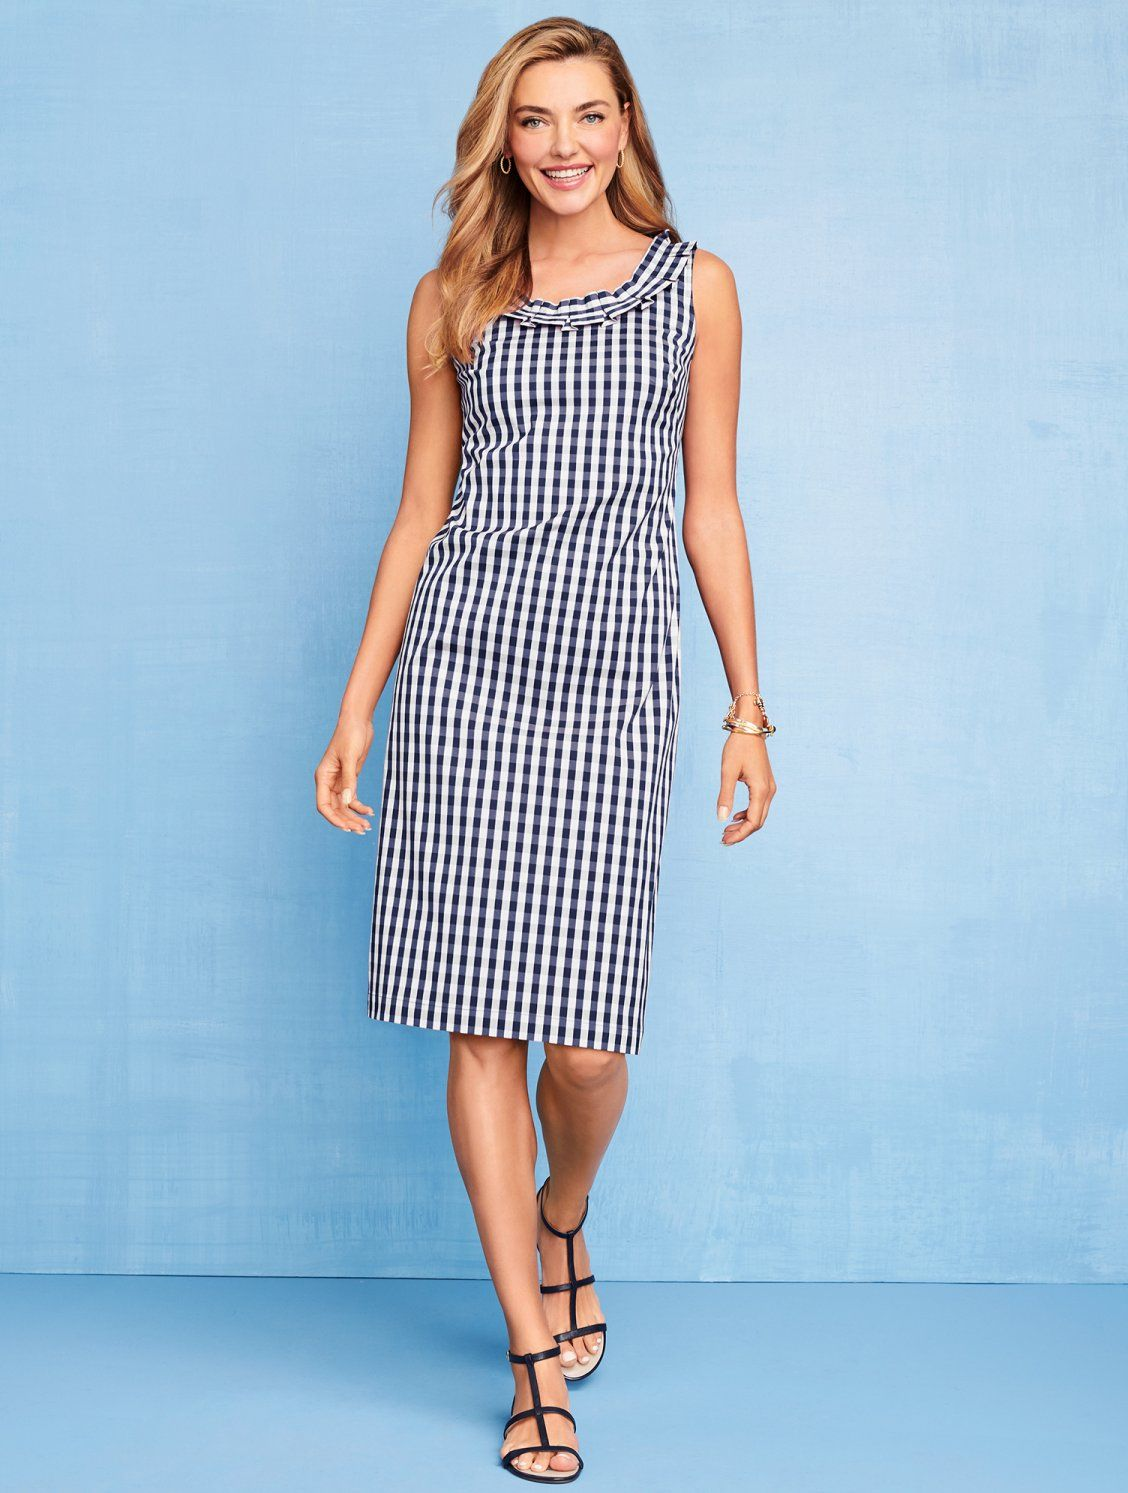 The Gingham Version Of Our Silky Smooth Sheath Features Intricate Pleated Details At The Scoop Neckli Modest Summer Dresses Simple Summer Dresses Gingham Dress [ 1493 x 1128 Pixel ]